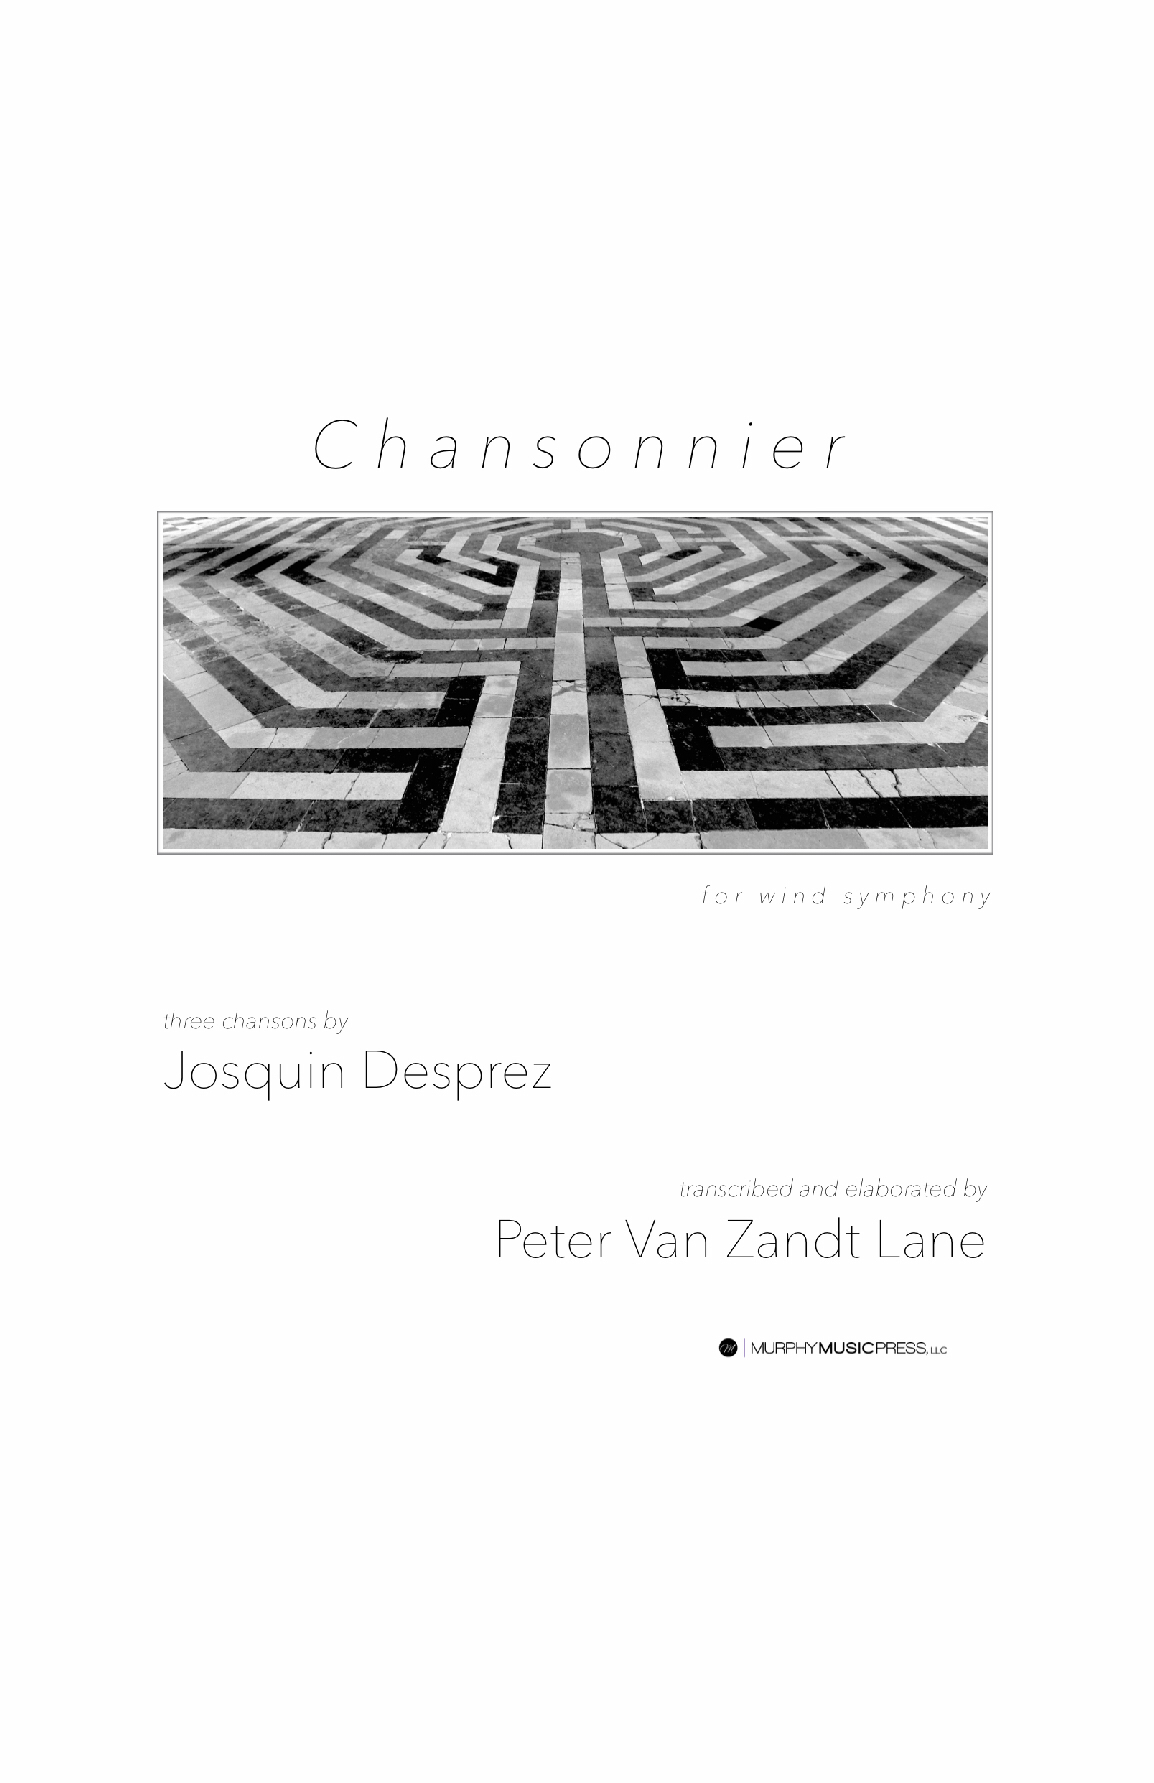 Chansonnier by Peter Van Zandt Lane